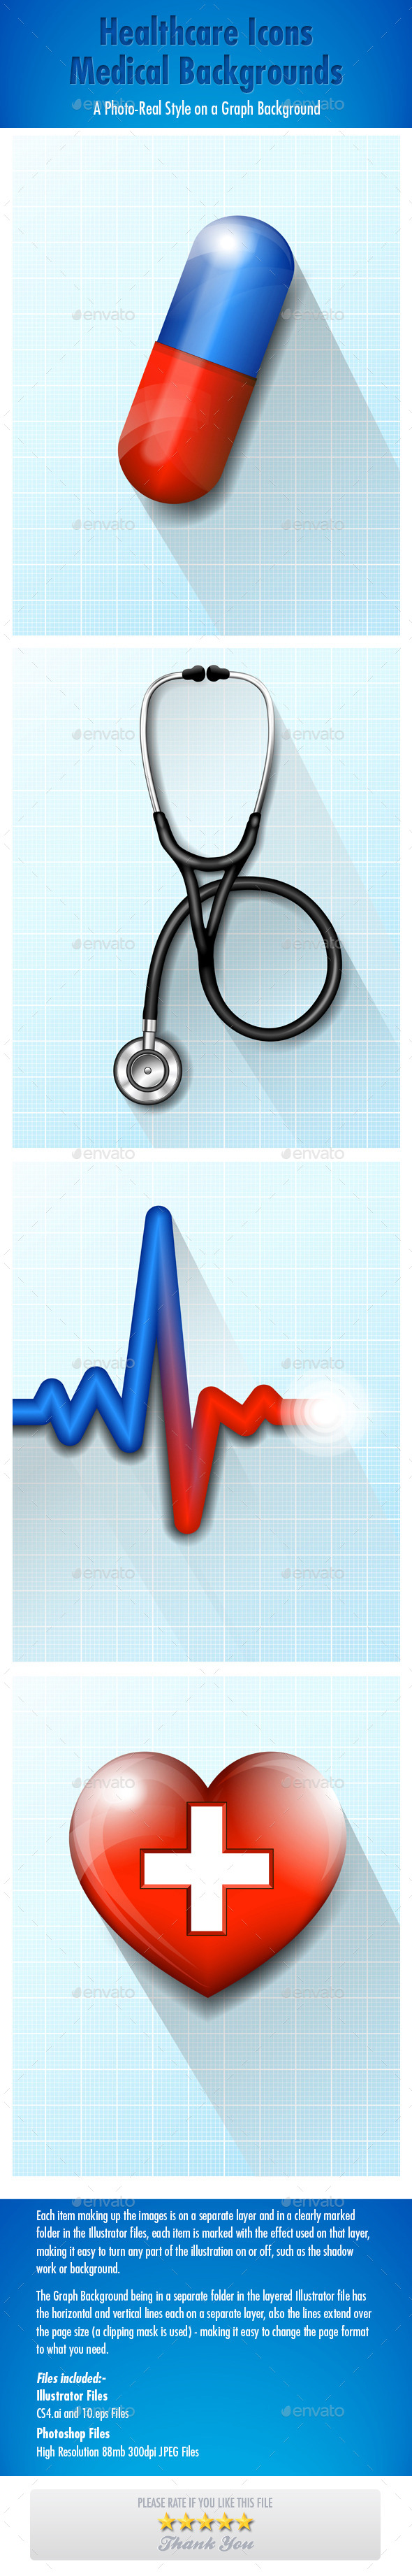 GraphicRiver Healthcare Icons Medical Backgrounds 9057509